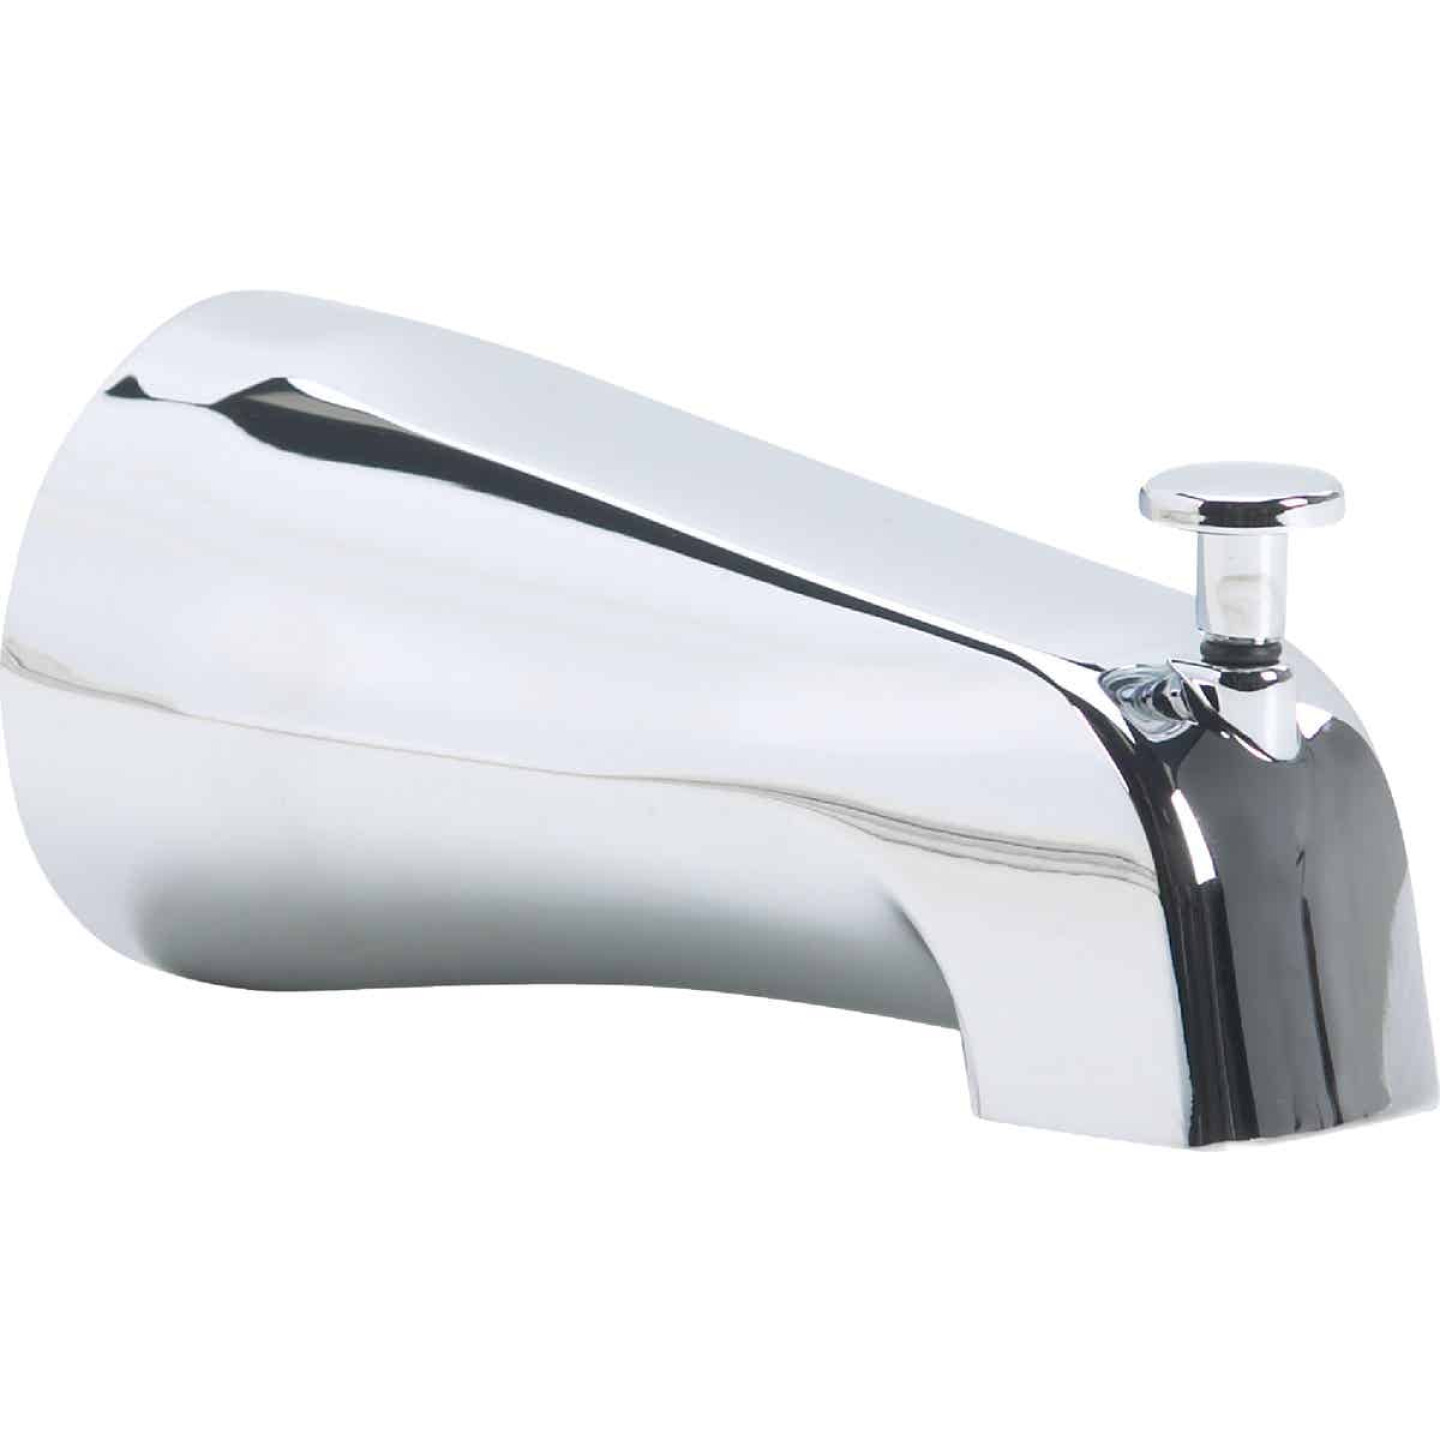 Kohler Genuine Parts 1/2 In. Slip-Fit Chrome Bathtub Spout with Diverter Image 1